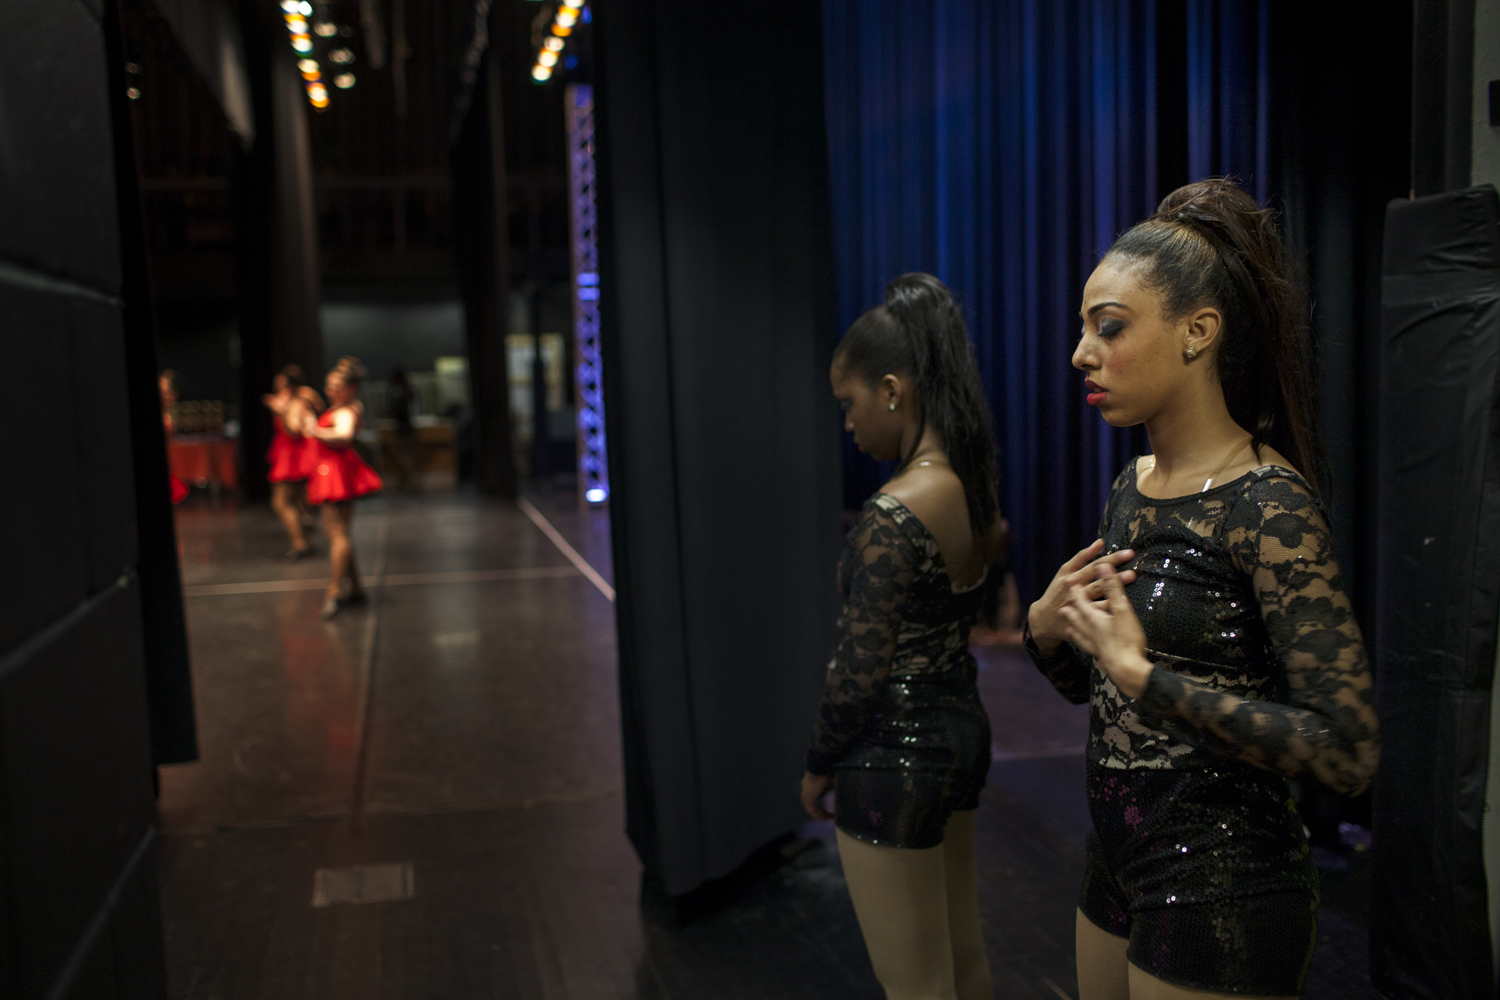 May 4th, 2013. Long Island, New York. Backstage at a dance competition with her dance school's team, Sarah takes a moment to center herself before she performs.